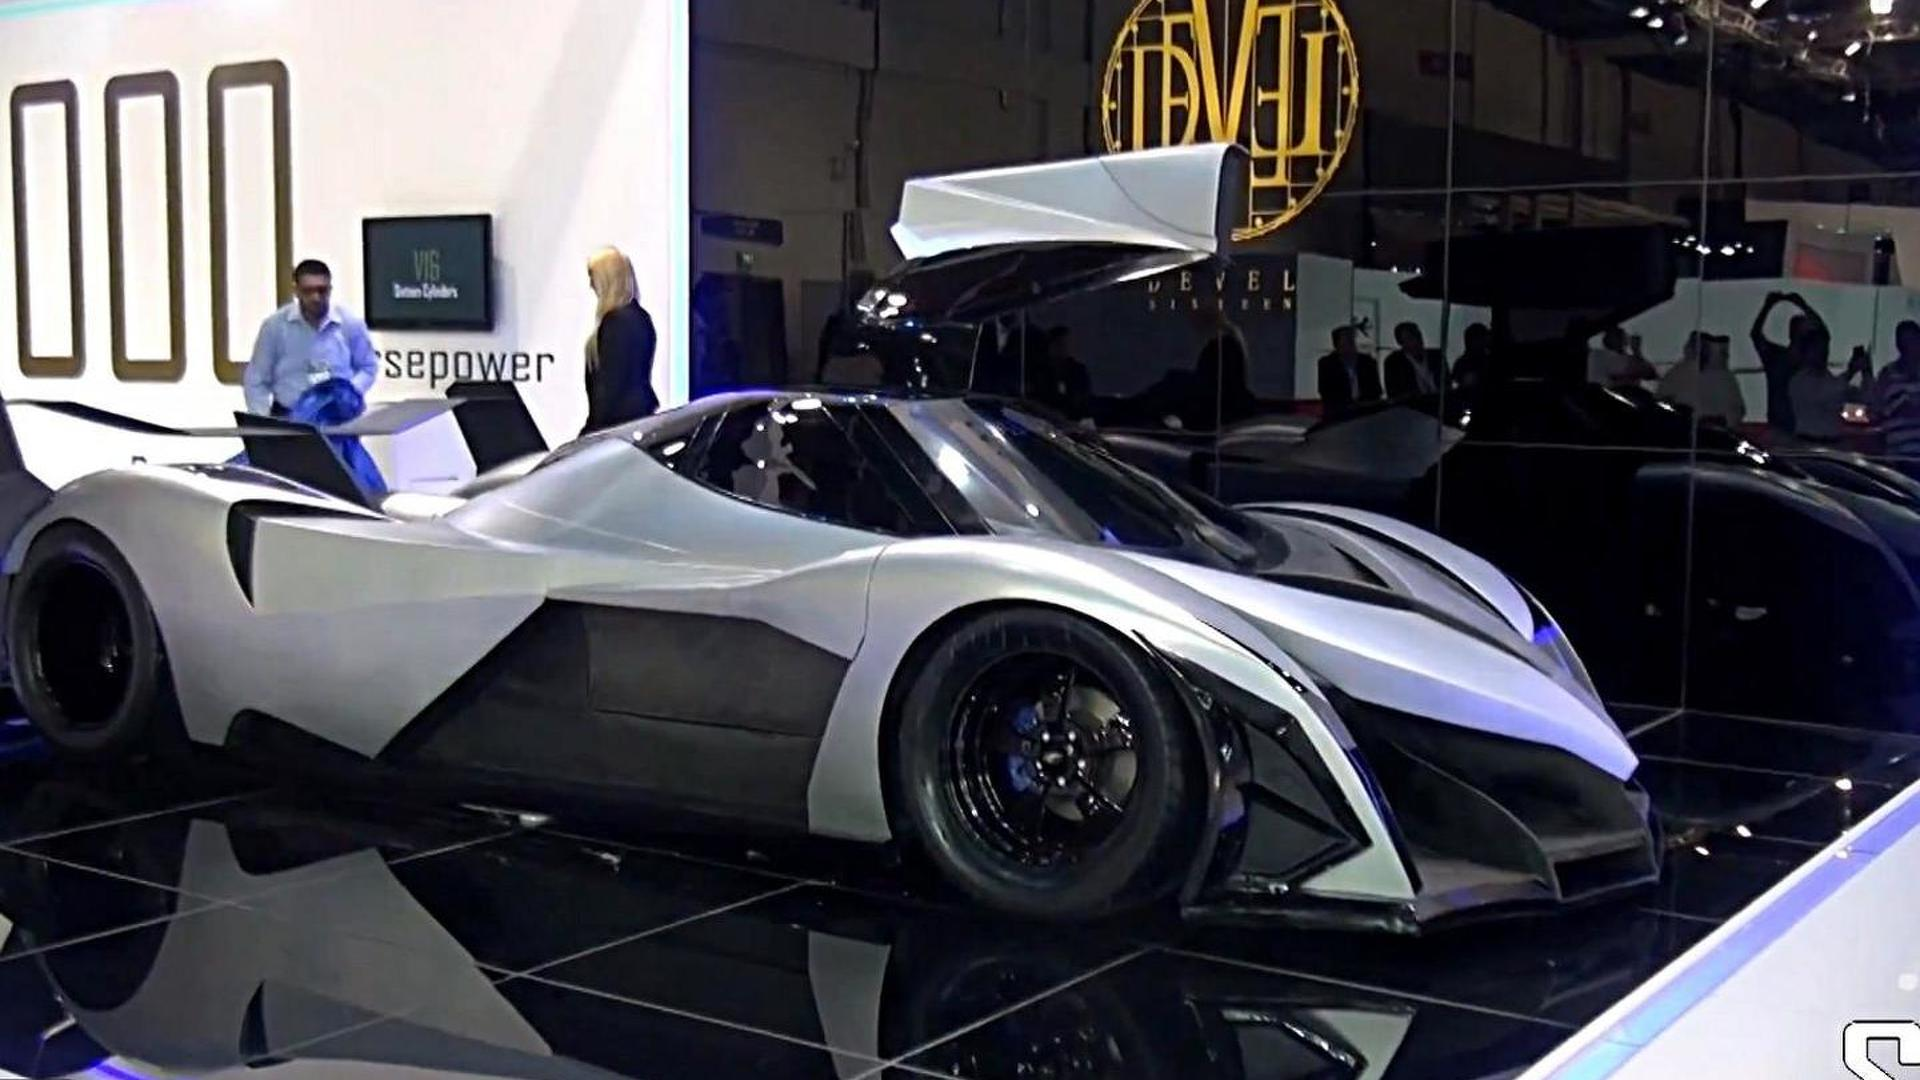 Devel Sixteen has an American engine, new details emerge